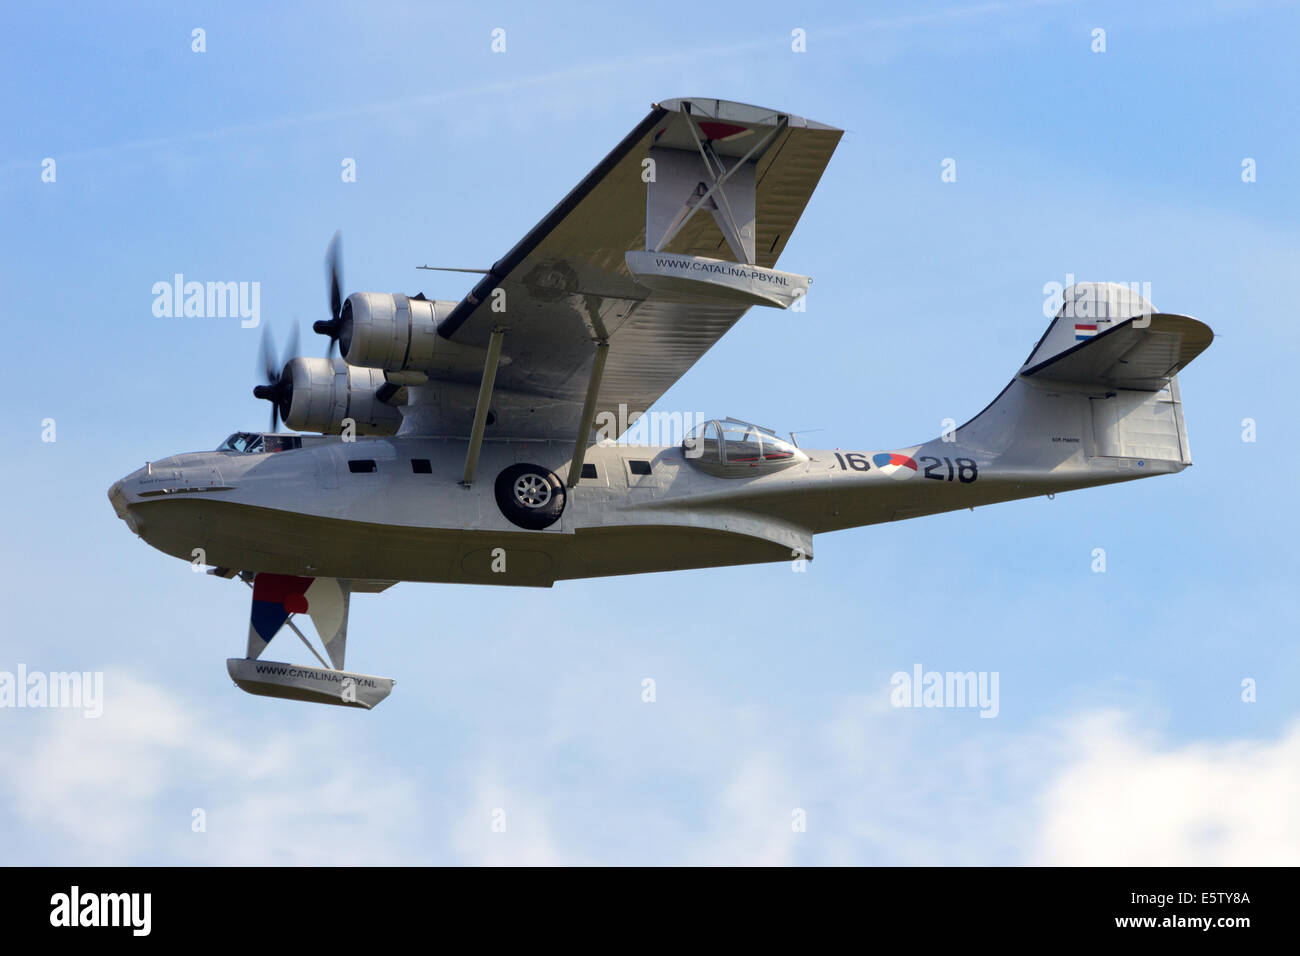 Consolidated PBY Catalina in Dutch Navy colors flying. - Stock Image